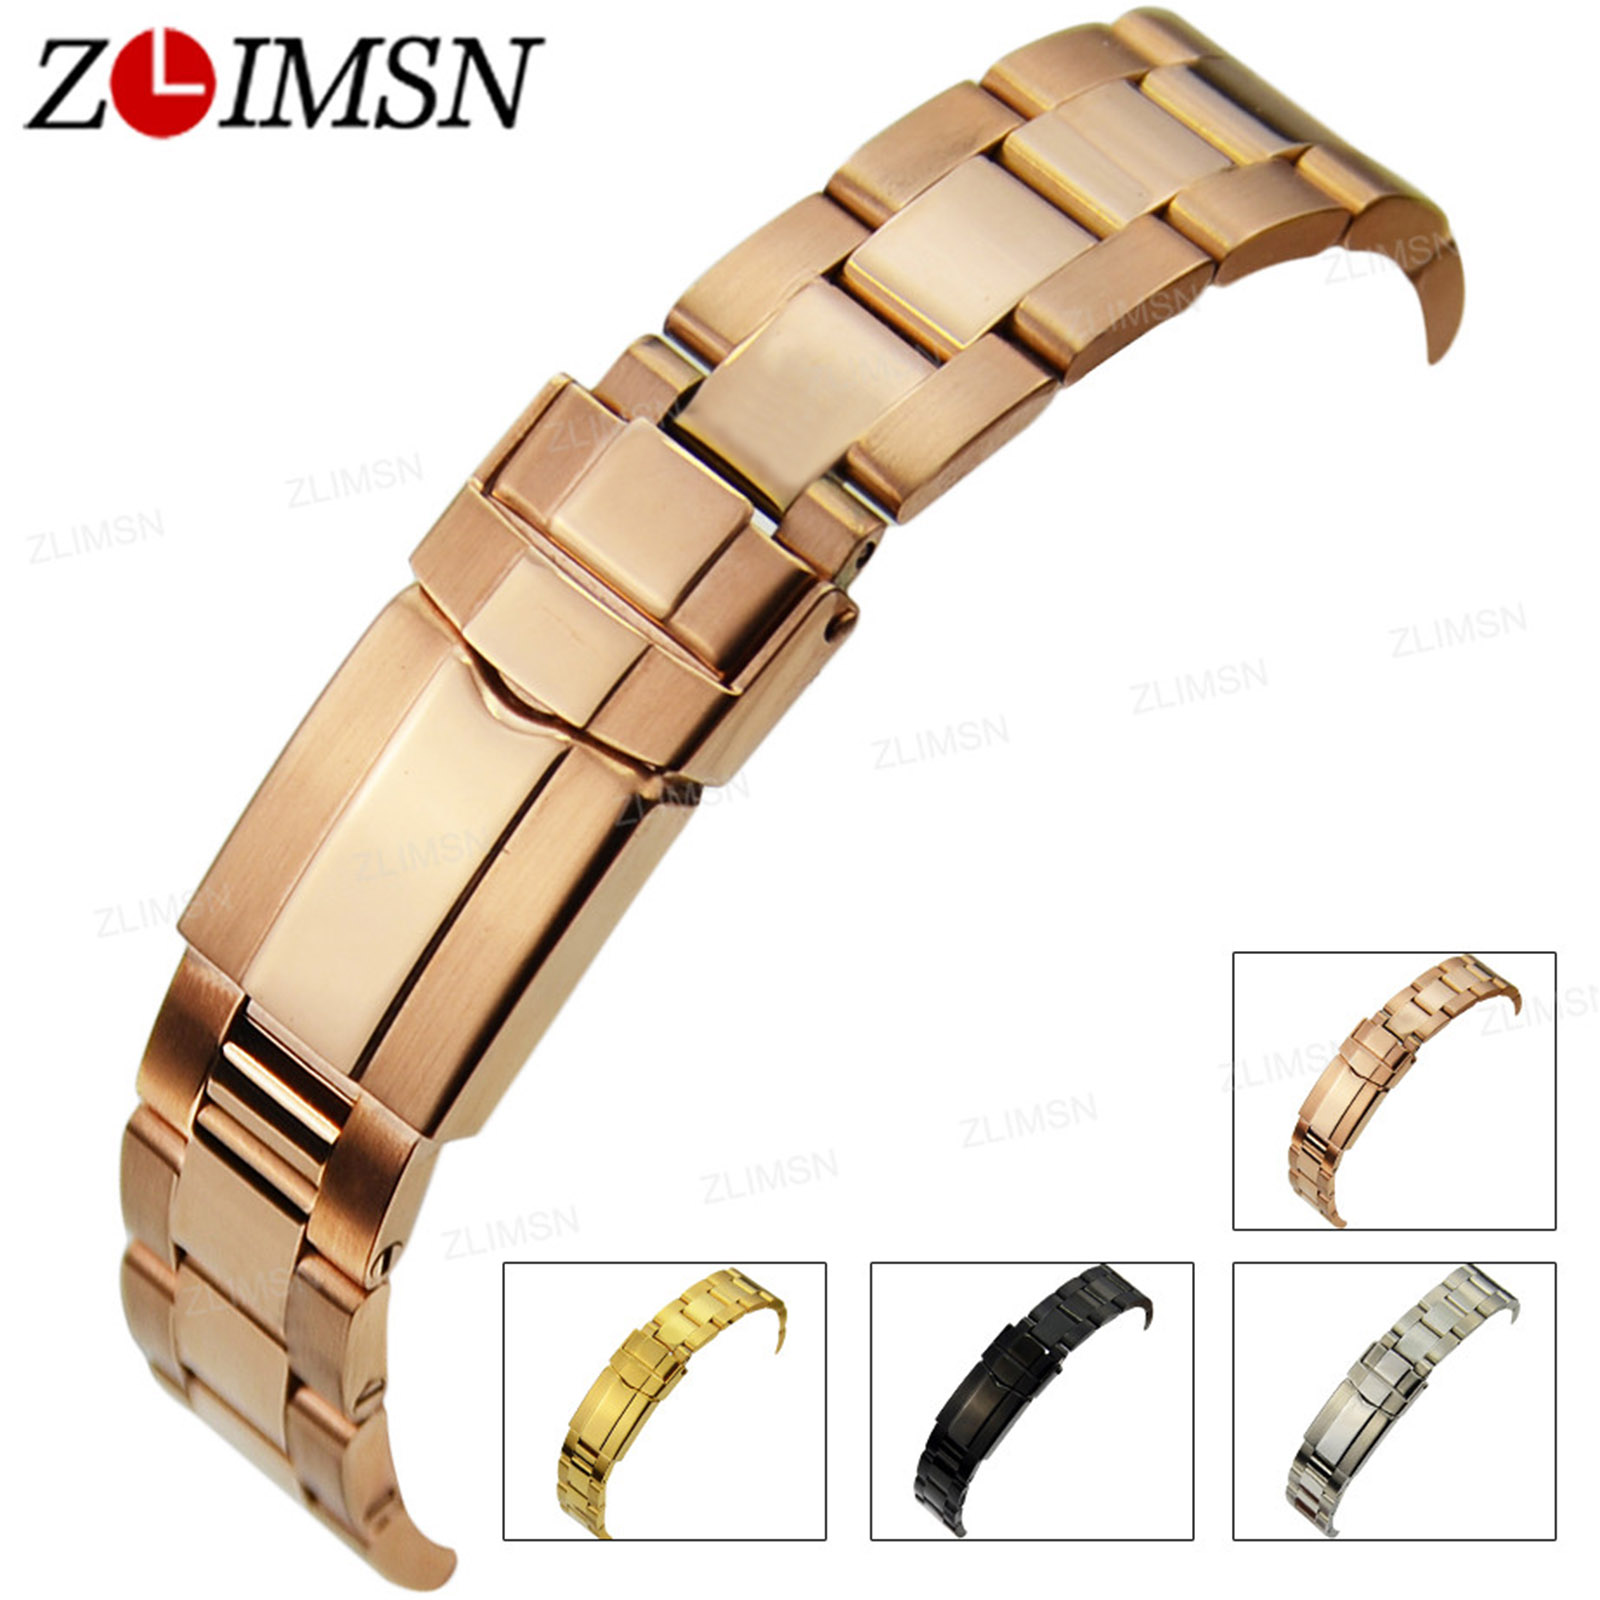 ZLIMSN Silver Watch Strap 316L Solid Stainless Steel Watchband 17mm 20mm Curved End Bracelets Deployment Clasp Relogio Masculino watchband 20mm new heavy solid 316l stainless steel watch bands bracelets for bu1350 bu1366 bu1360